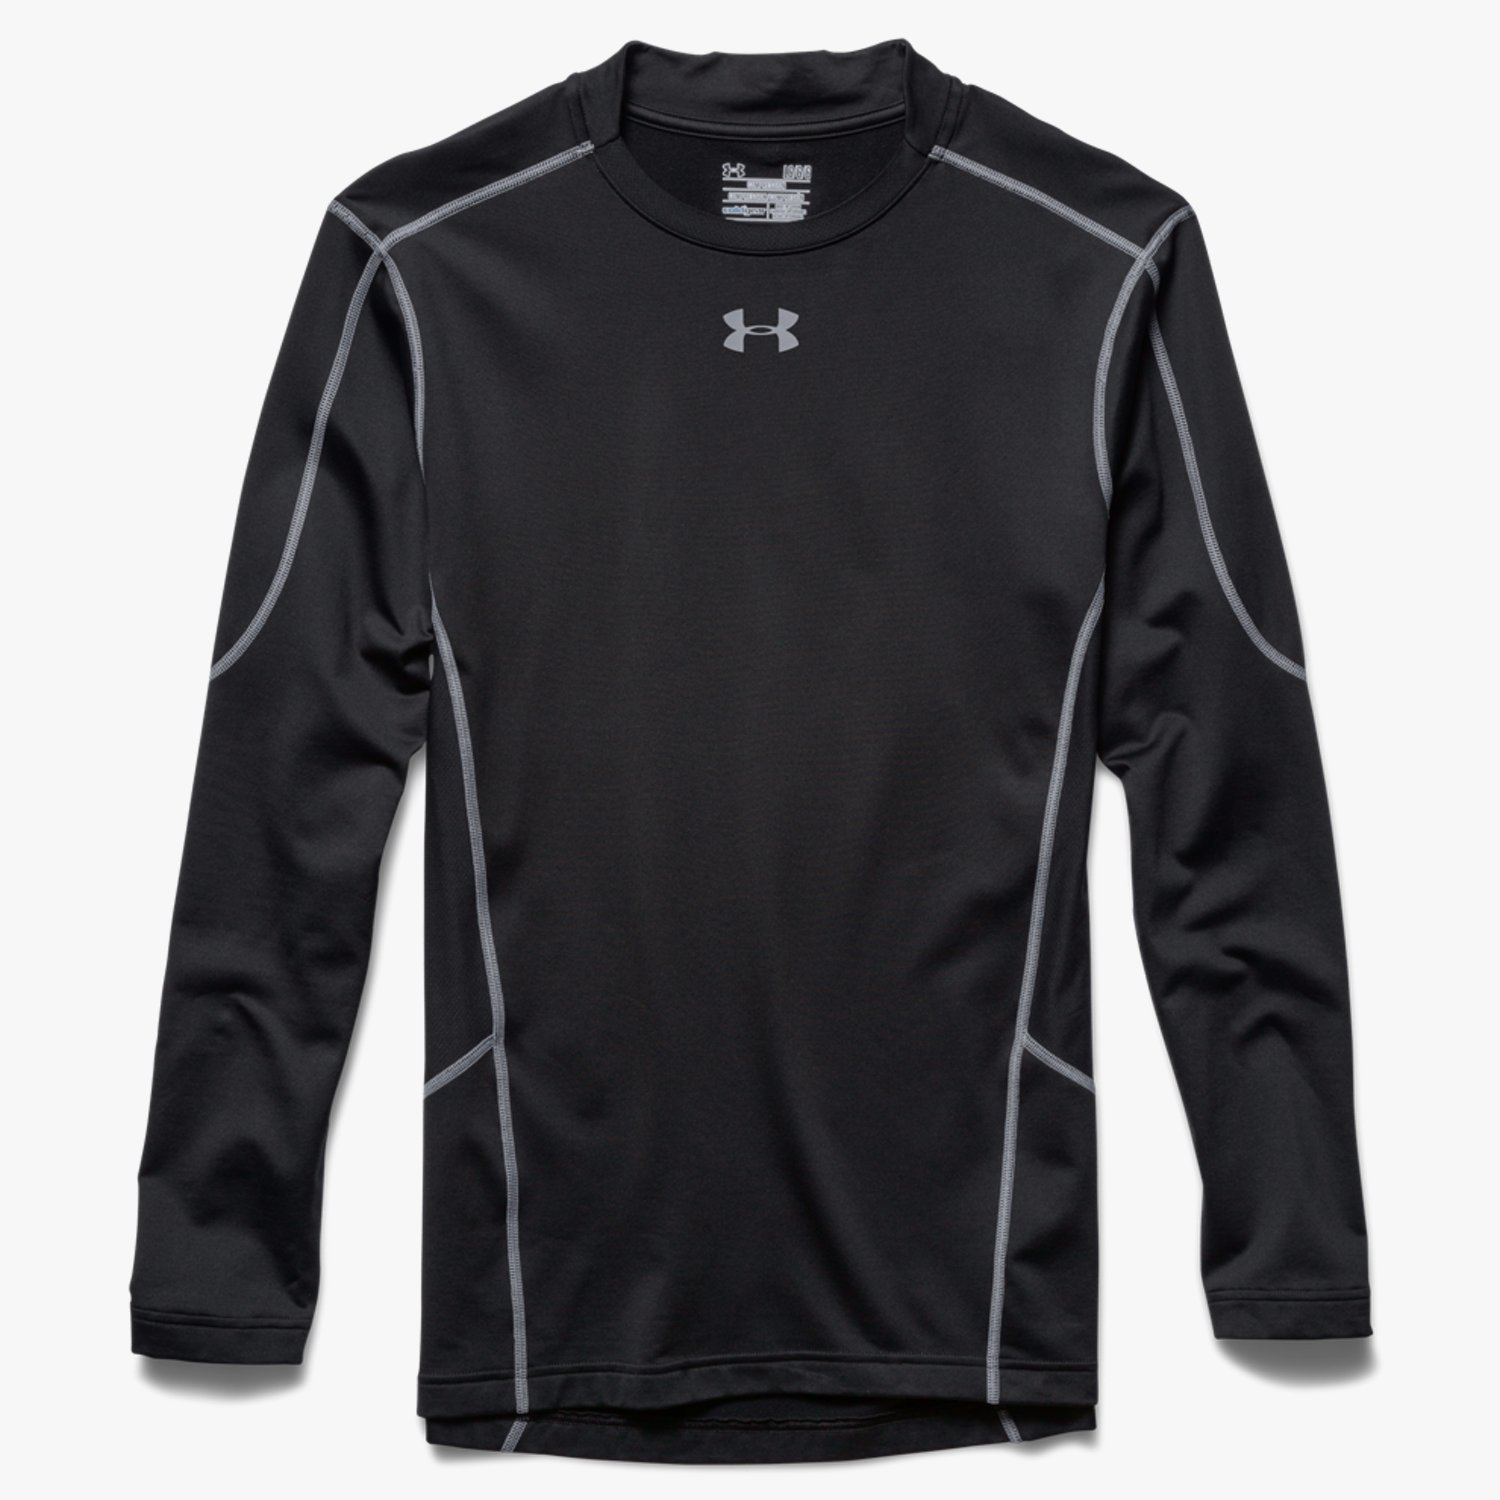 Under Armour ColdGear Evo Compression Hybrid Mock Black/Steel-30